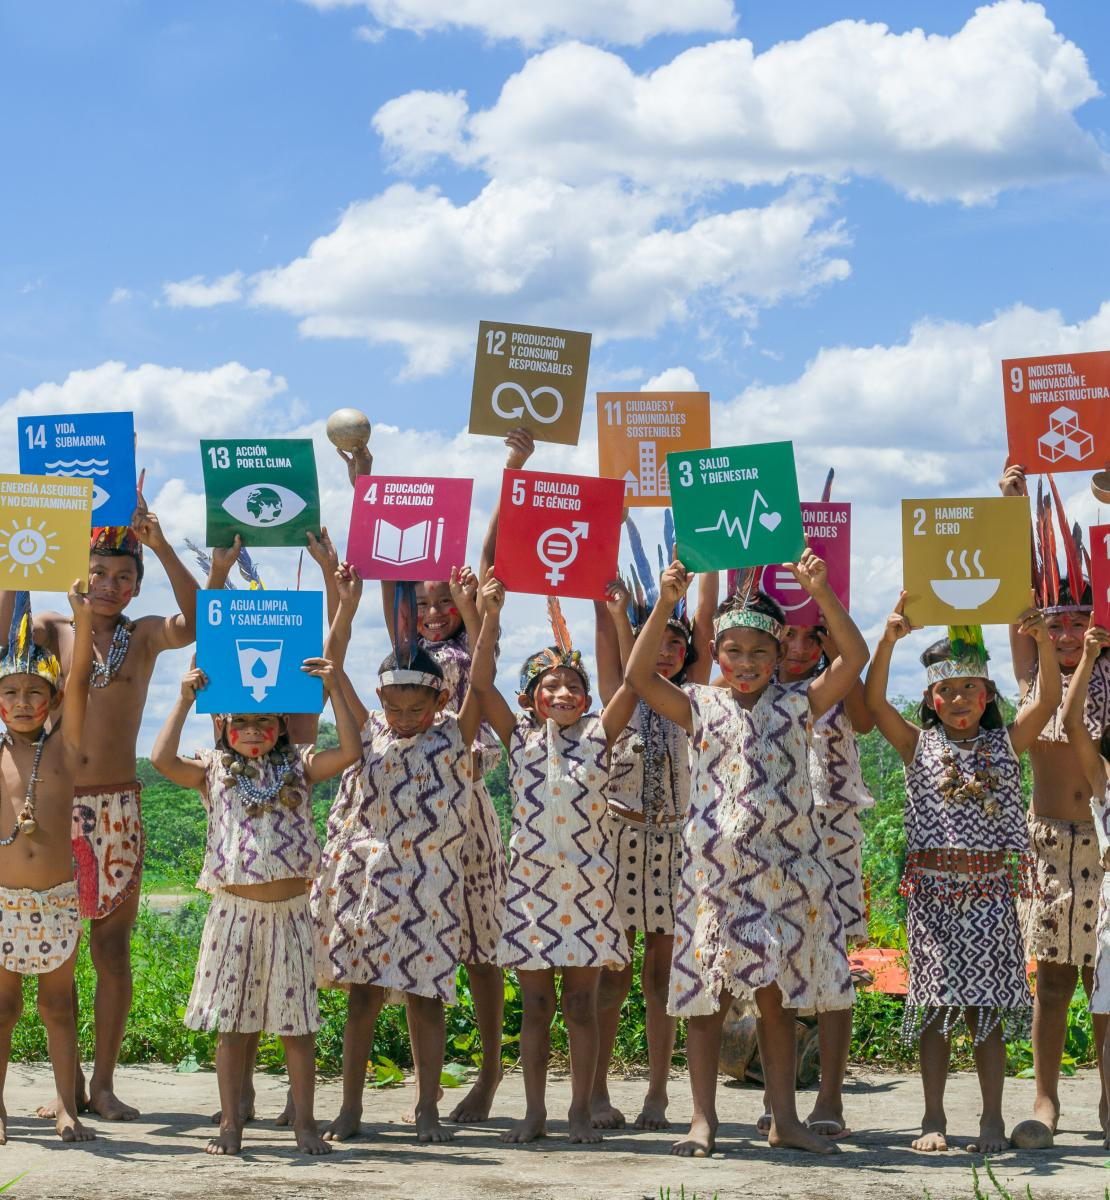 Young indigenous children wearing brightly coloured outfits proudly hold up SDG signage.